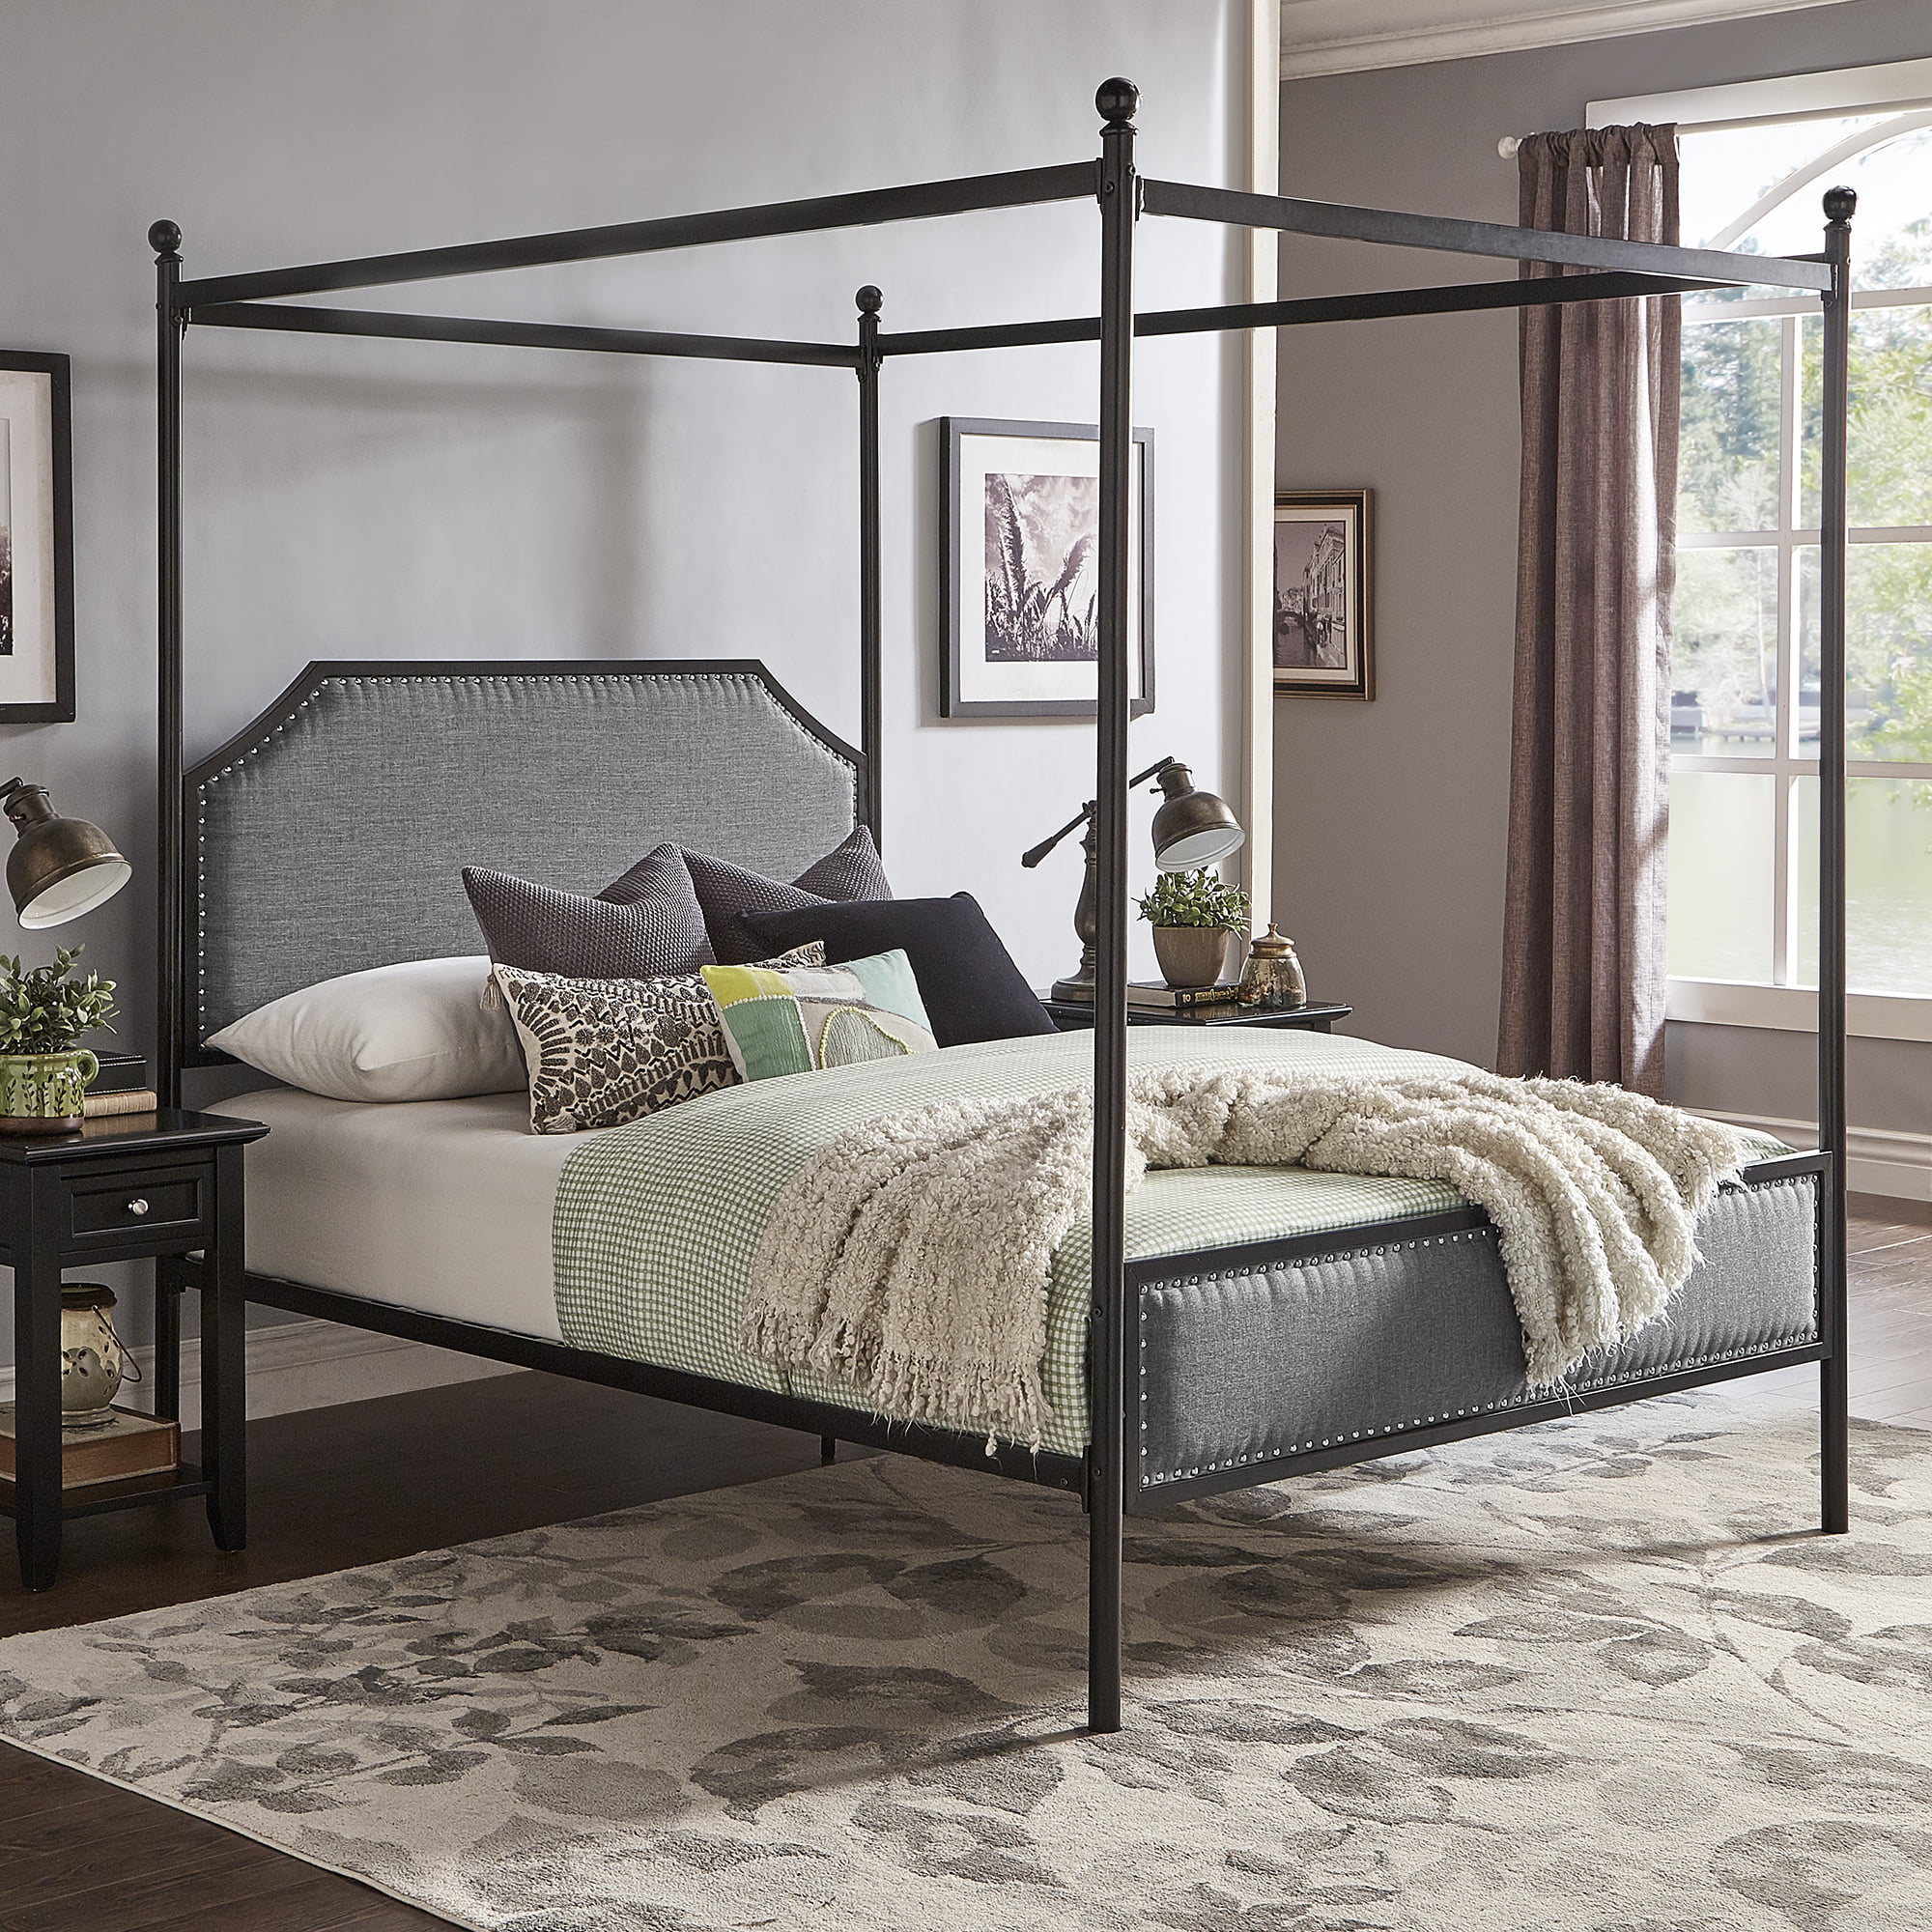 - Weston Home Hazleton Black Metal Queen Canopy Bed With Grey